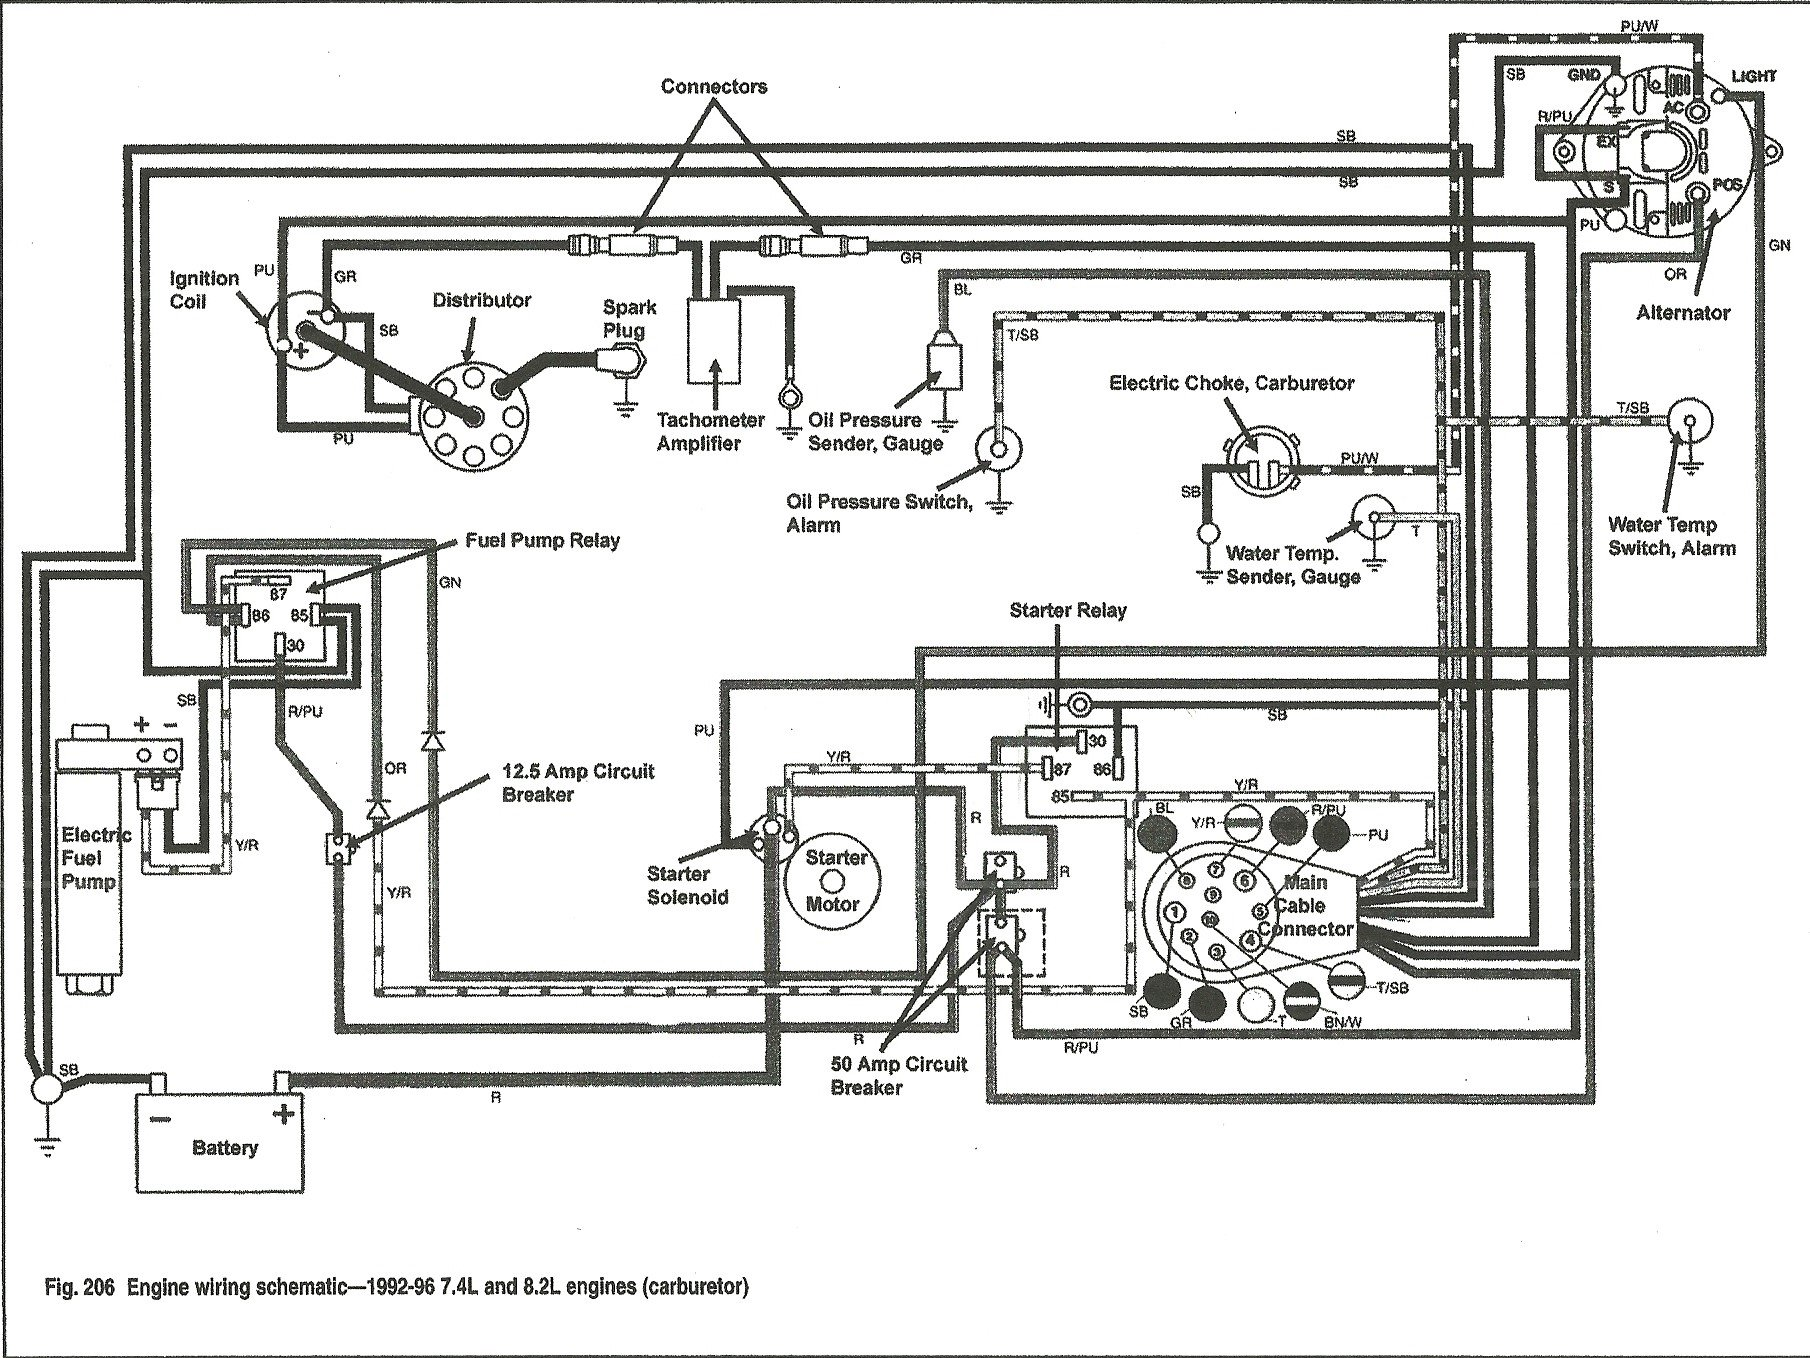 2013 05 14_043617_scan0002 volvo penta ignition switch wiring diagram 28 images 5 7  at readyjetset.co